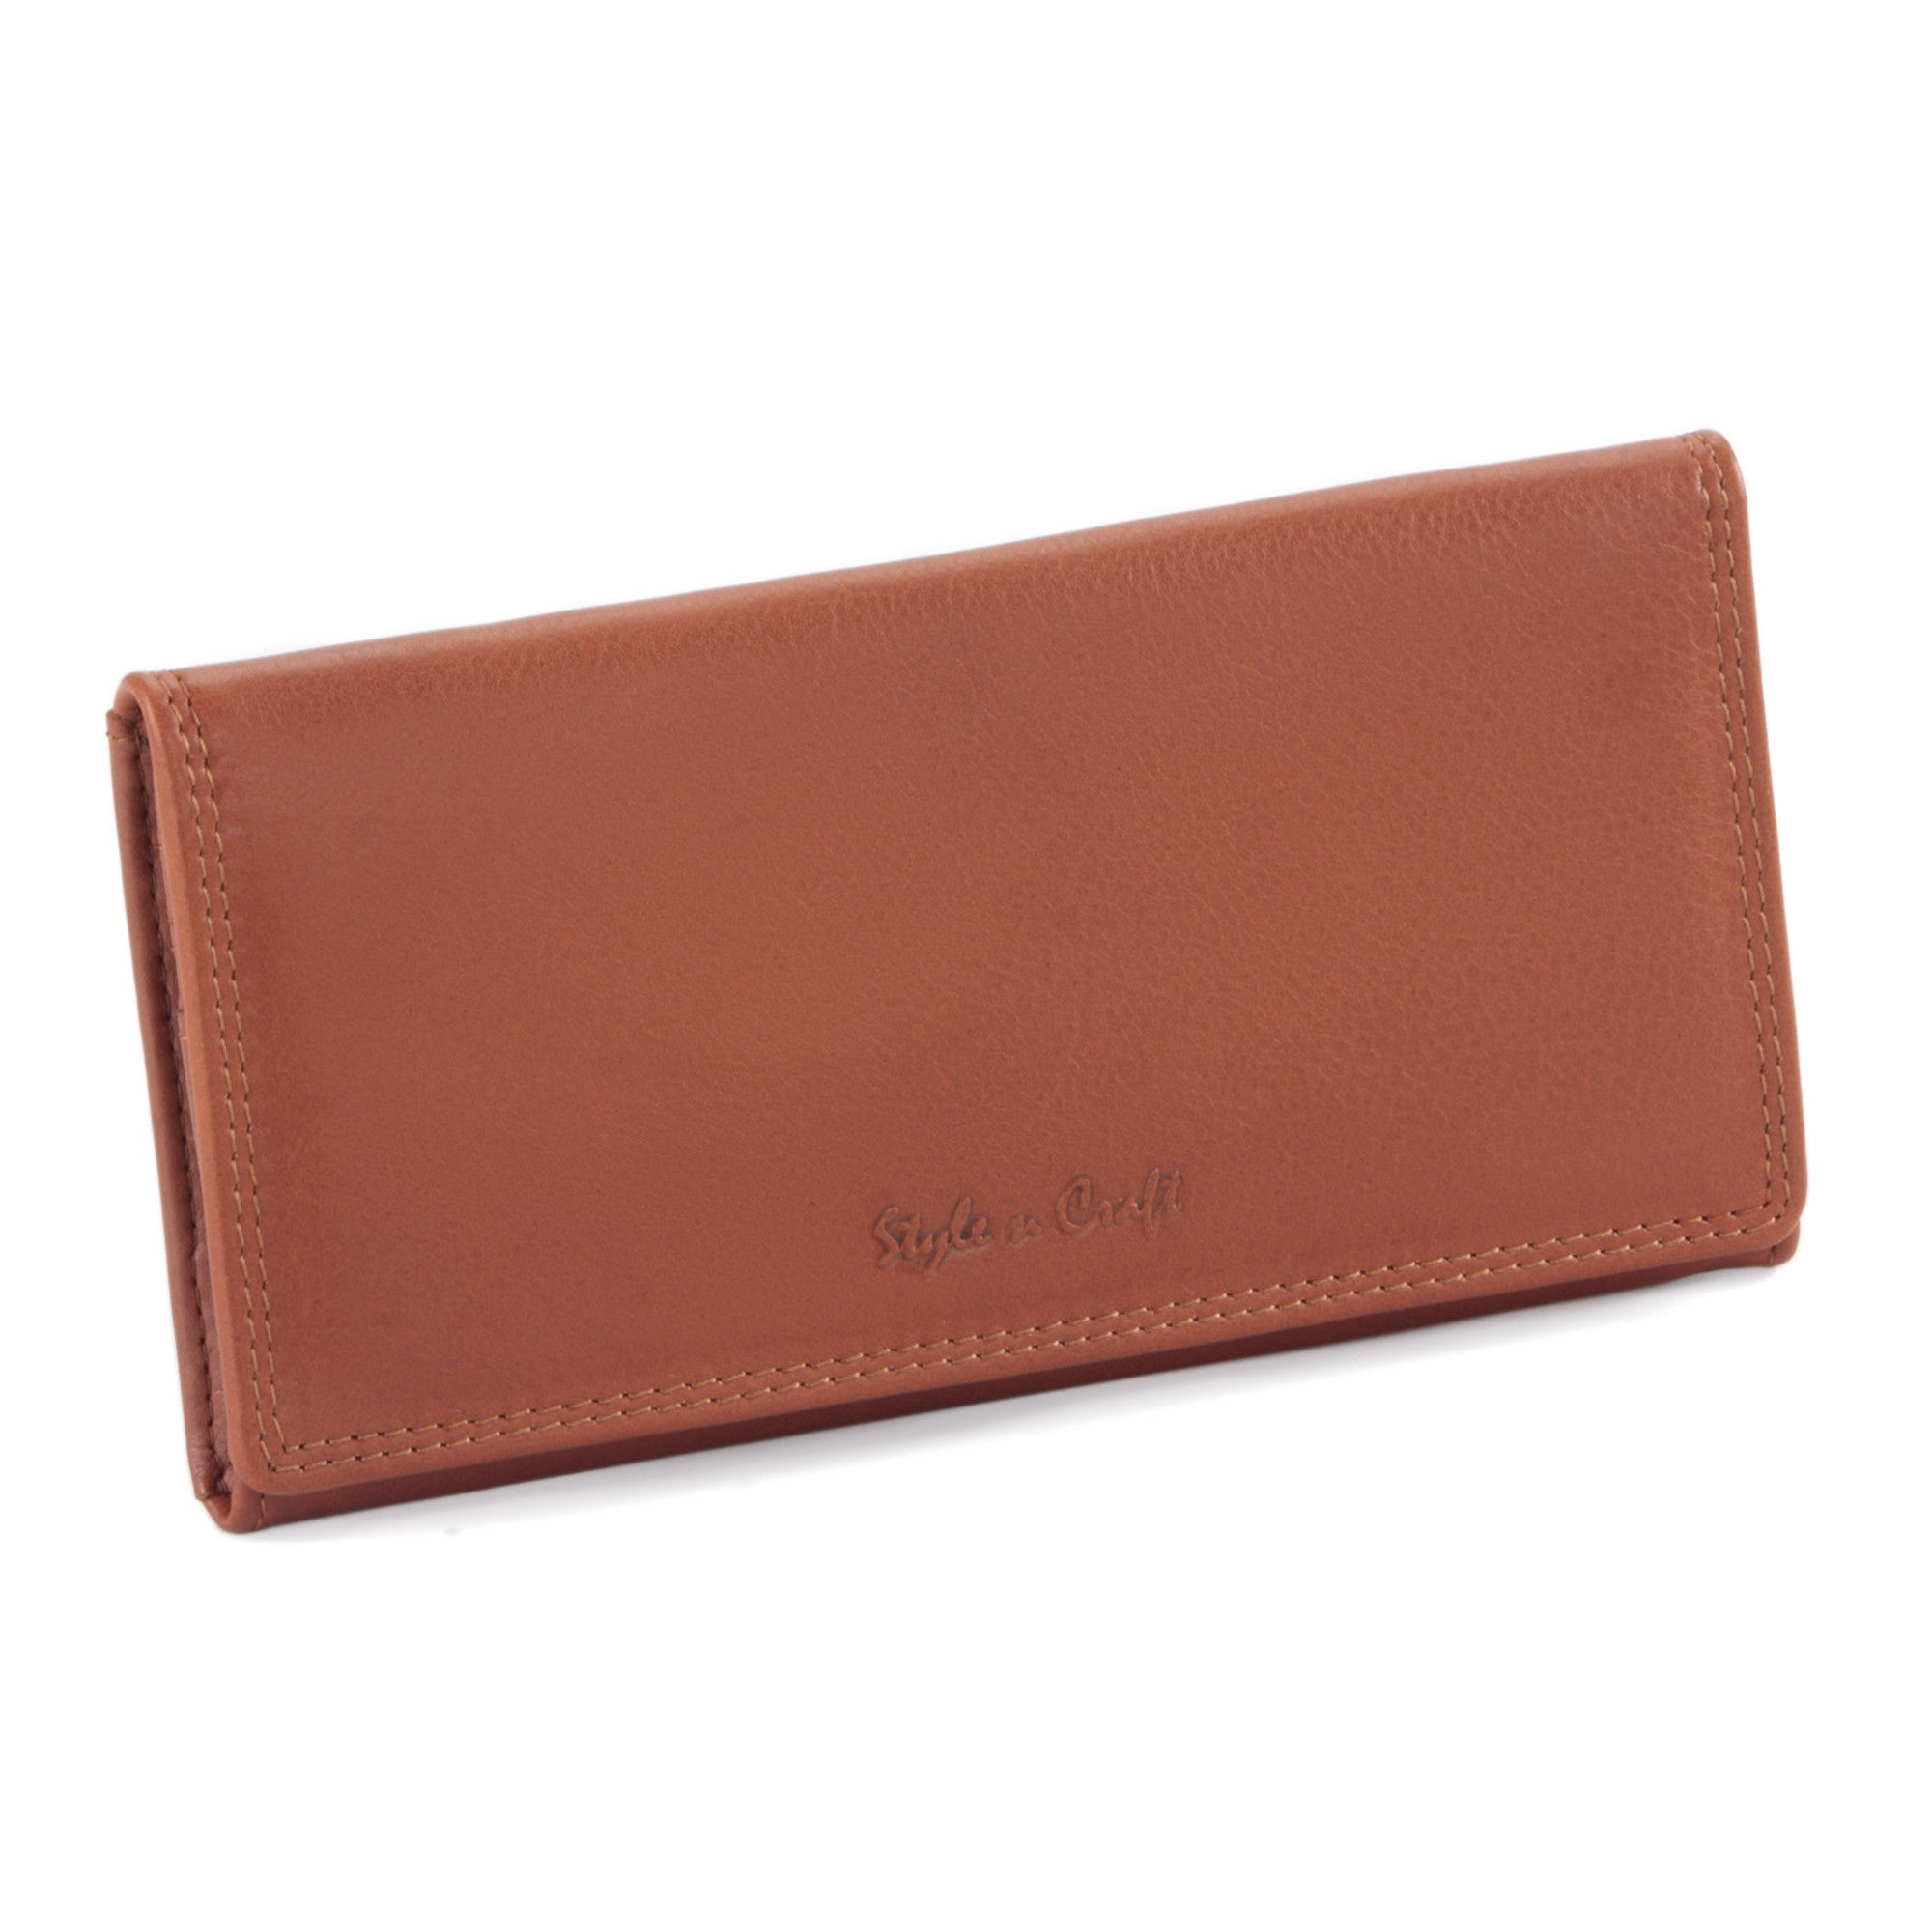 Style n Craft - 300965-CG Ladies Clutch Wallet in Leather - cognac or tan color - closed view front